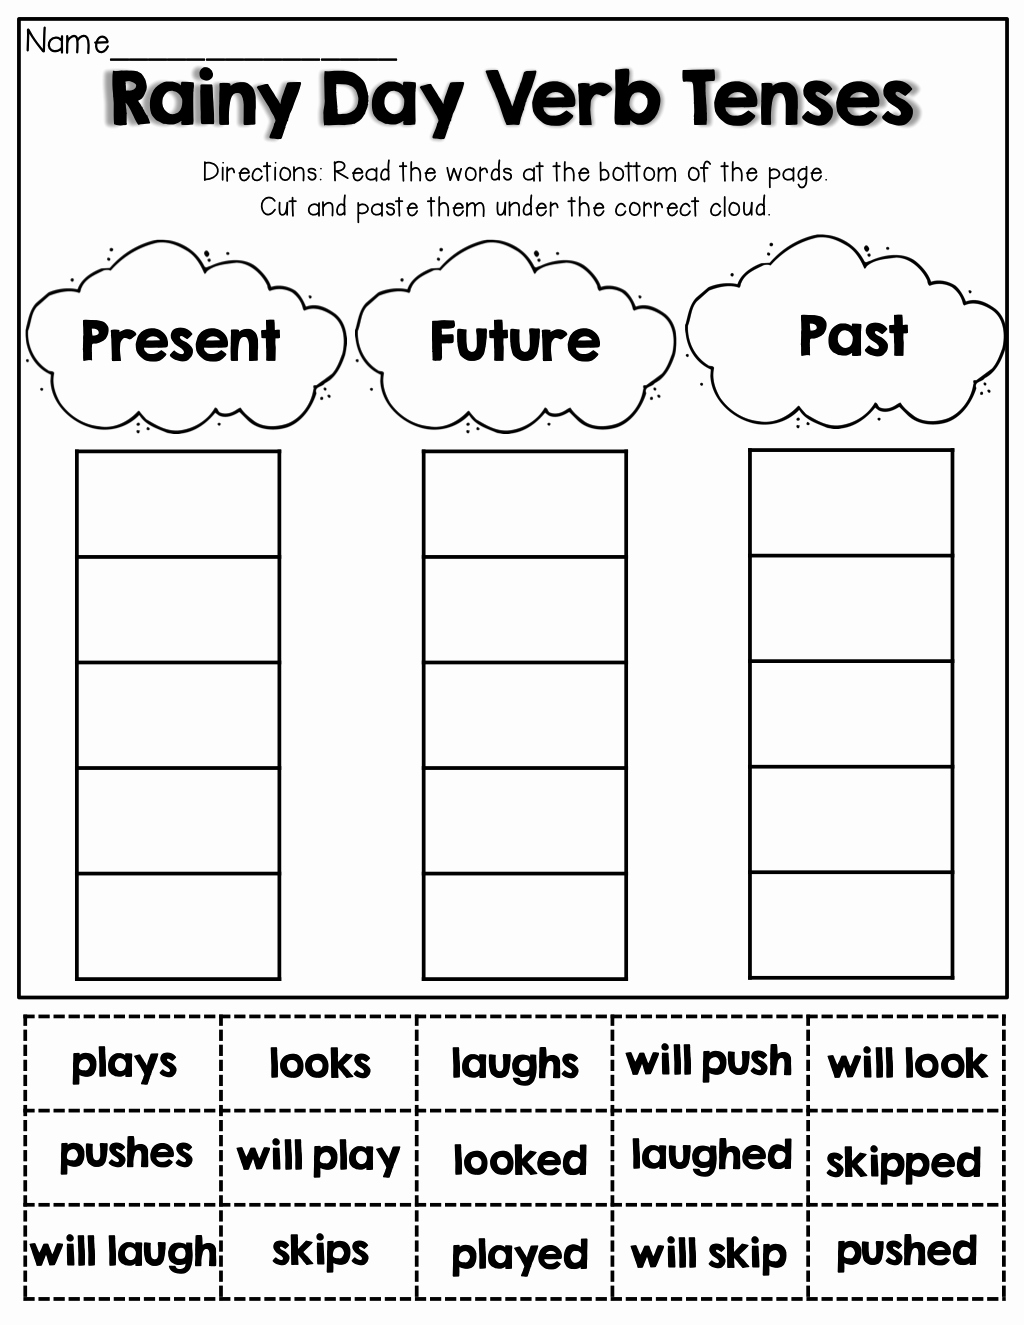 Verbs Worksheets First Grade New 82 Info Verb Examples 1st Grade Pdf Doc Download Verb